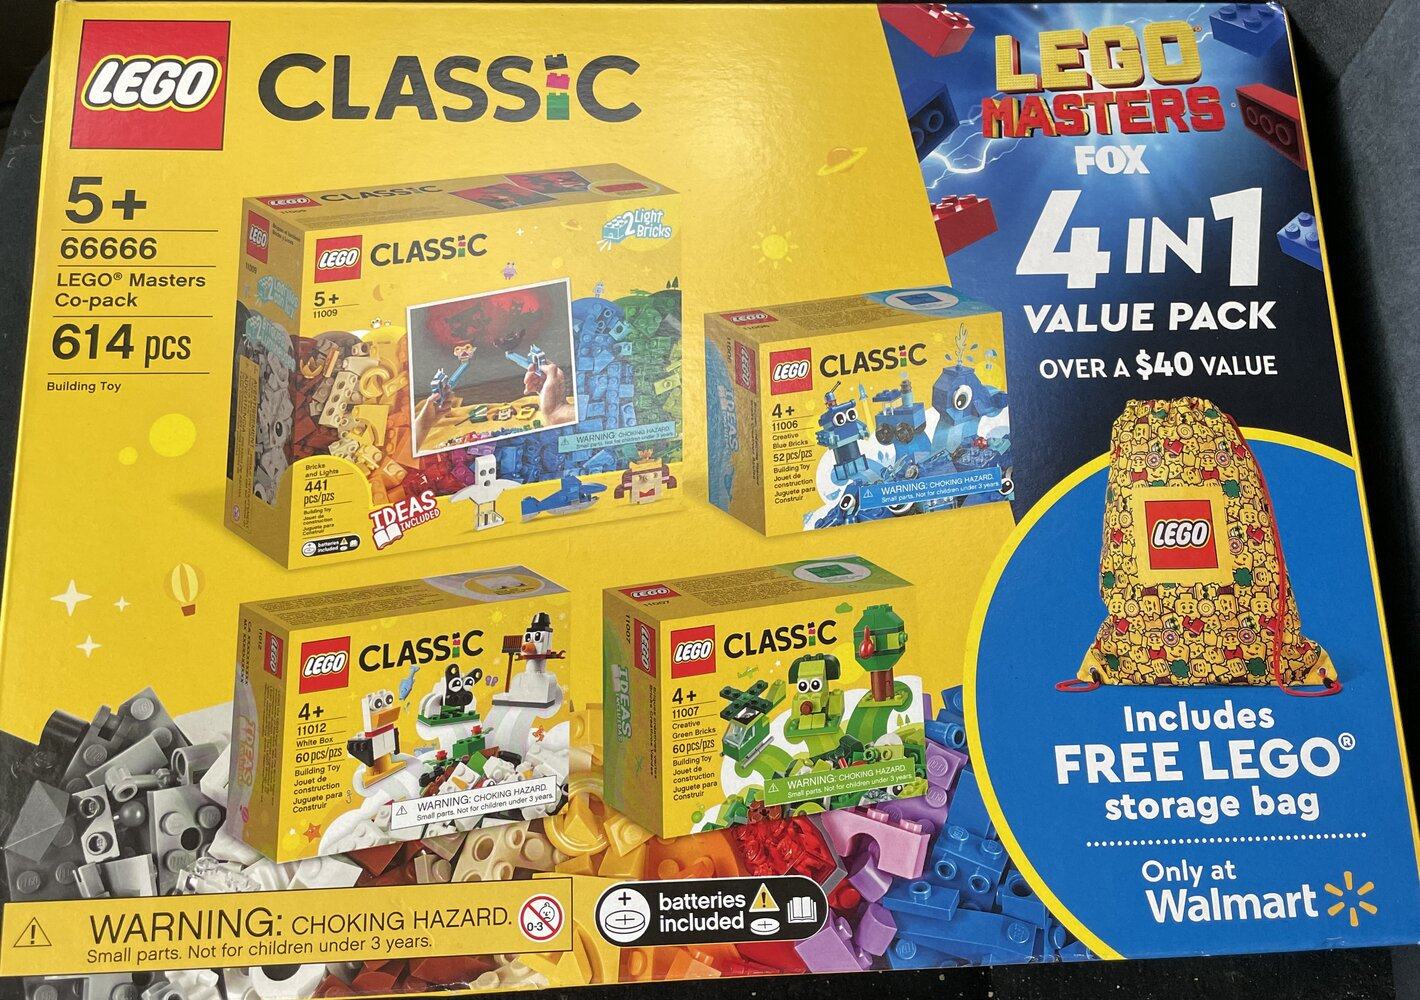 LEGO Masters Co-pack